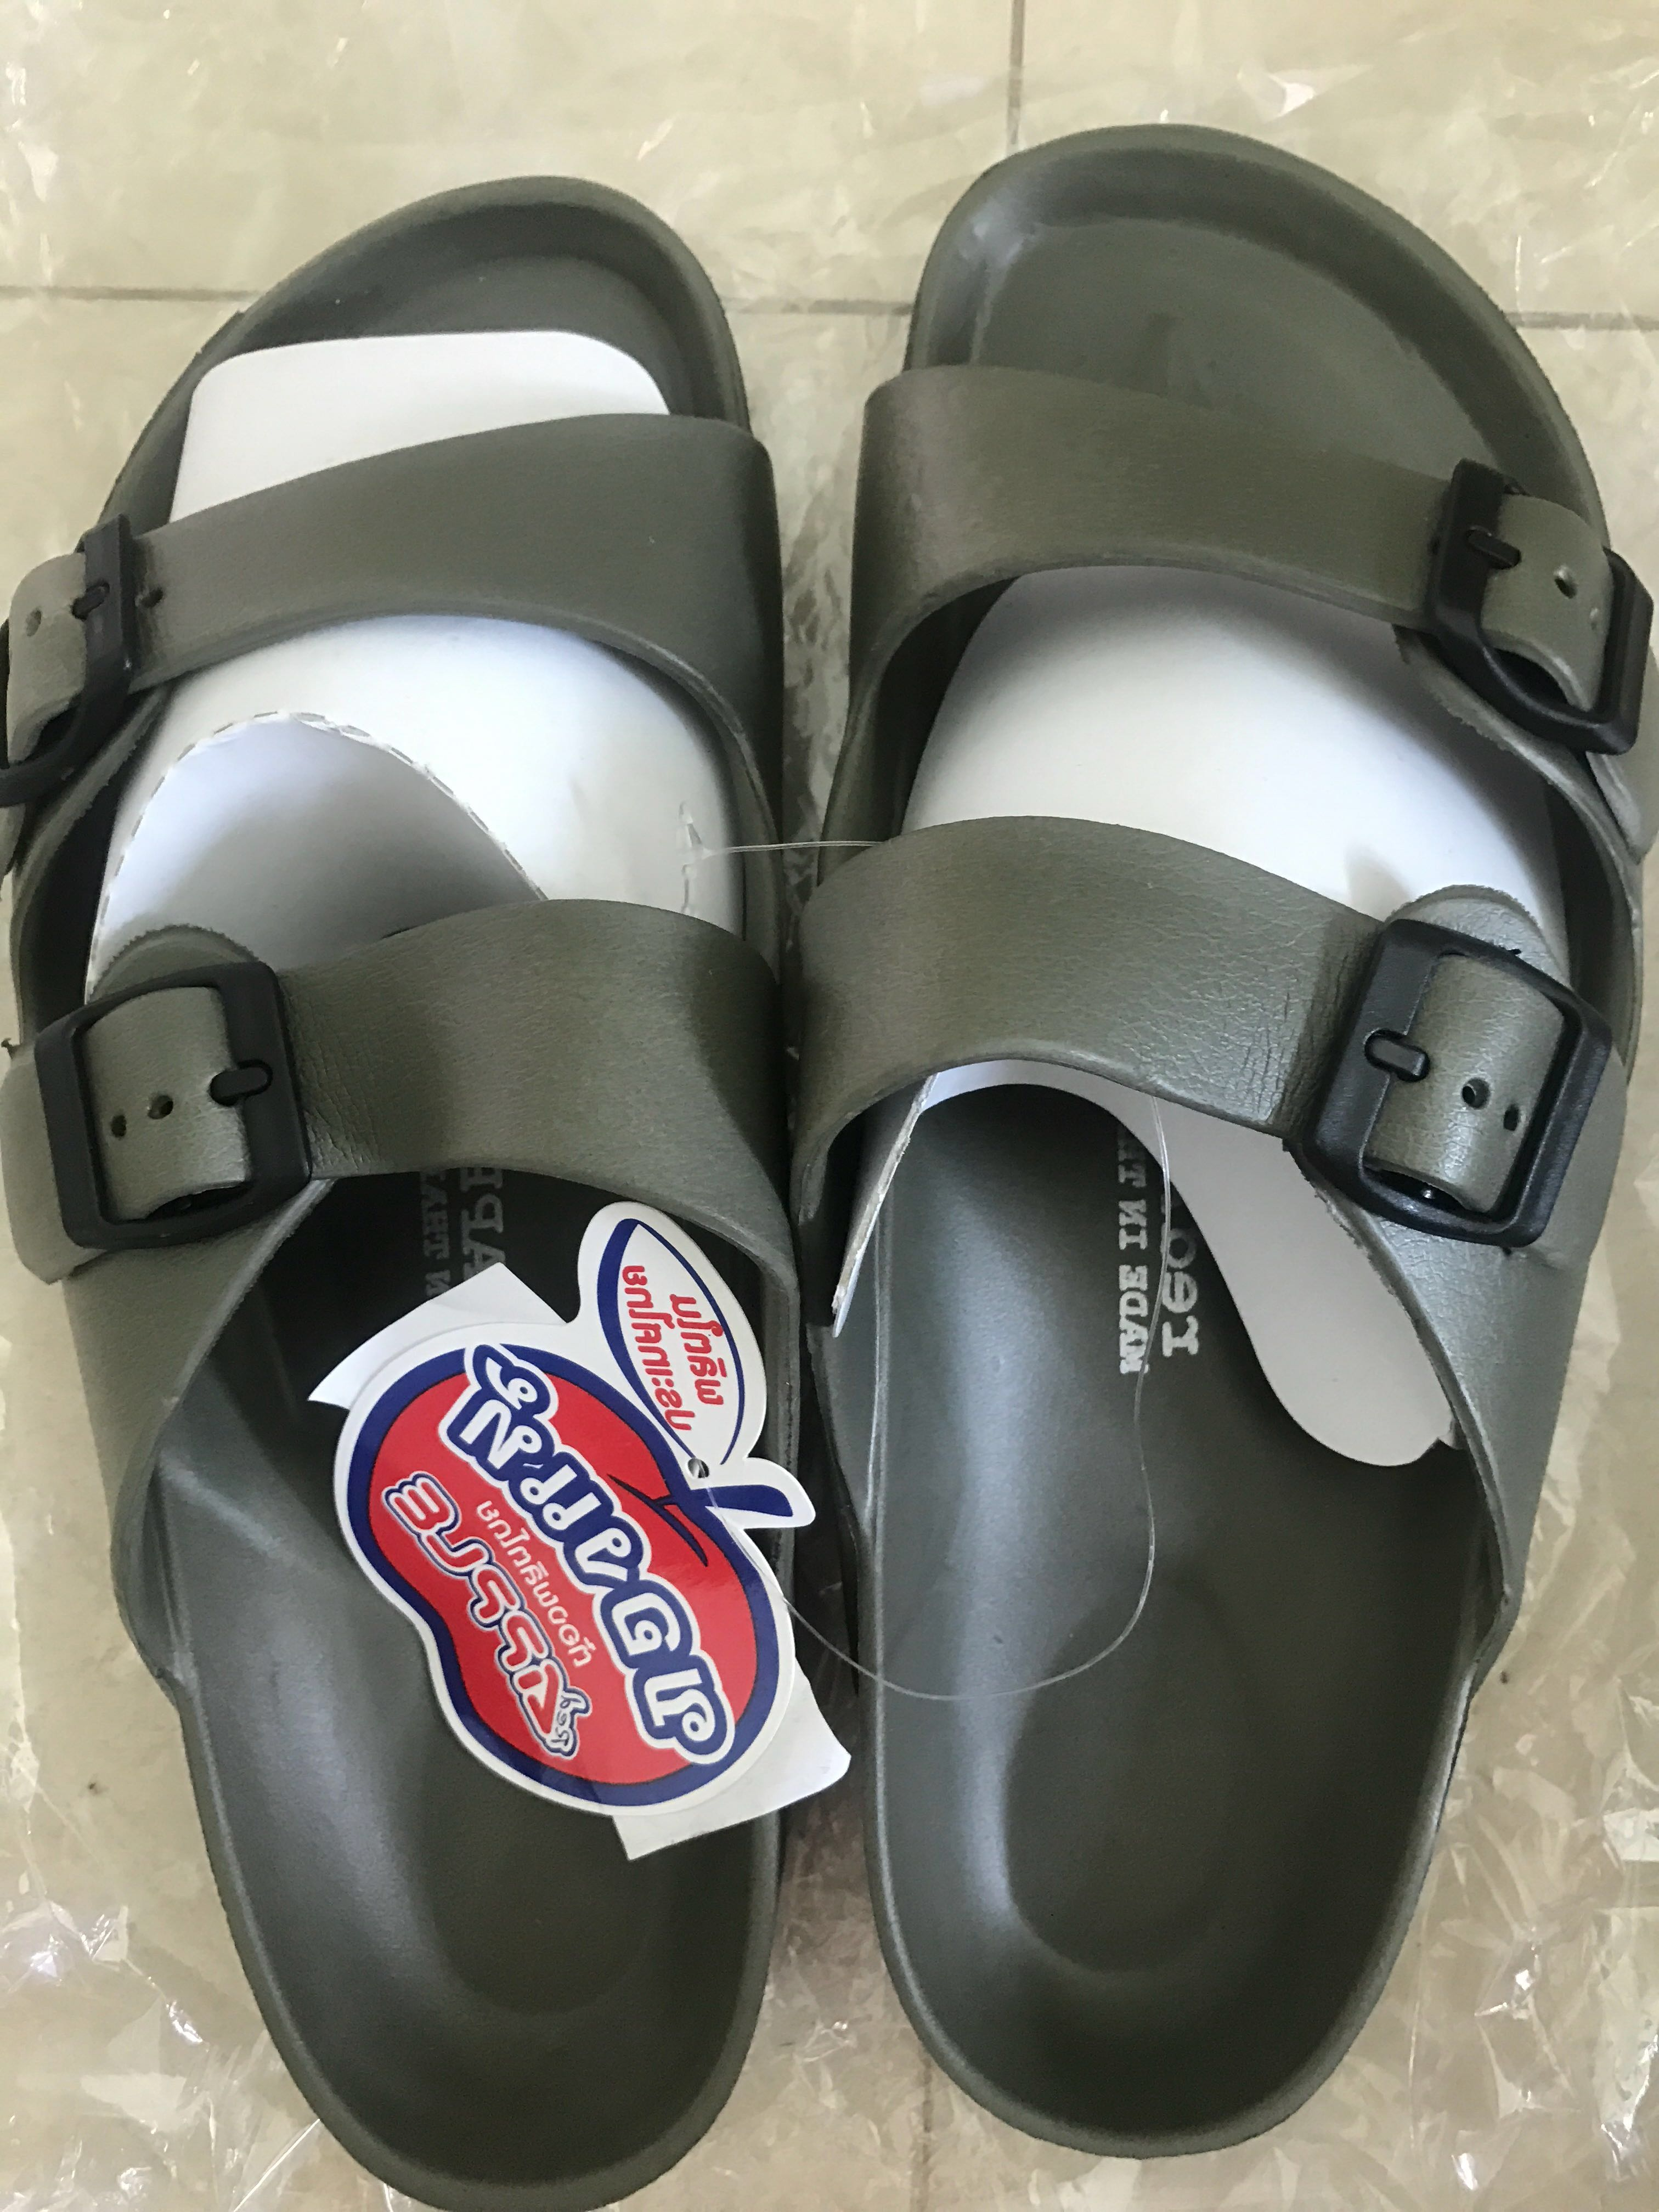 on sale e4e15 ddfc0 BN Slippers from Thailand, Men s Fashion, Footwear, Slippers   Sandals on  Carousell